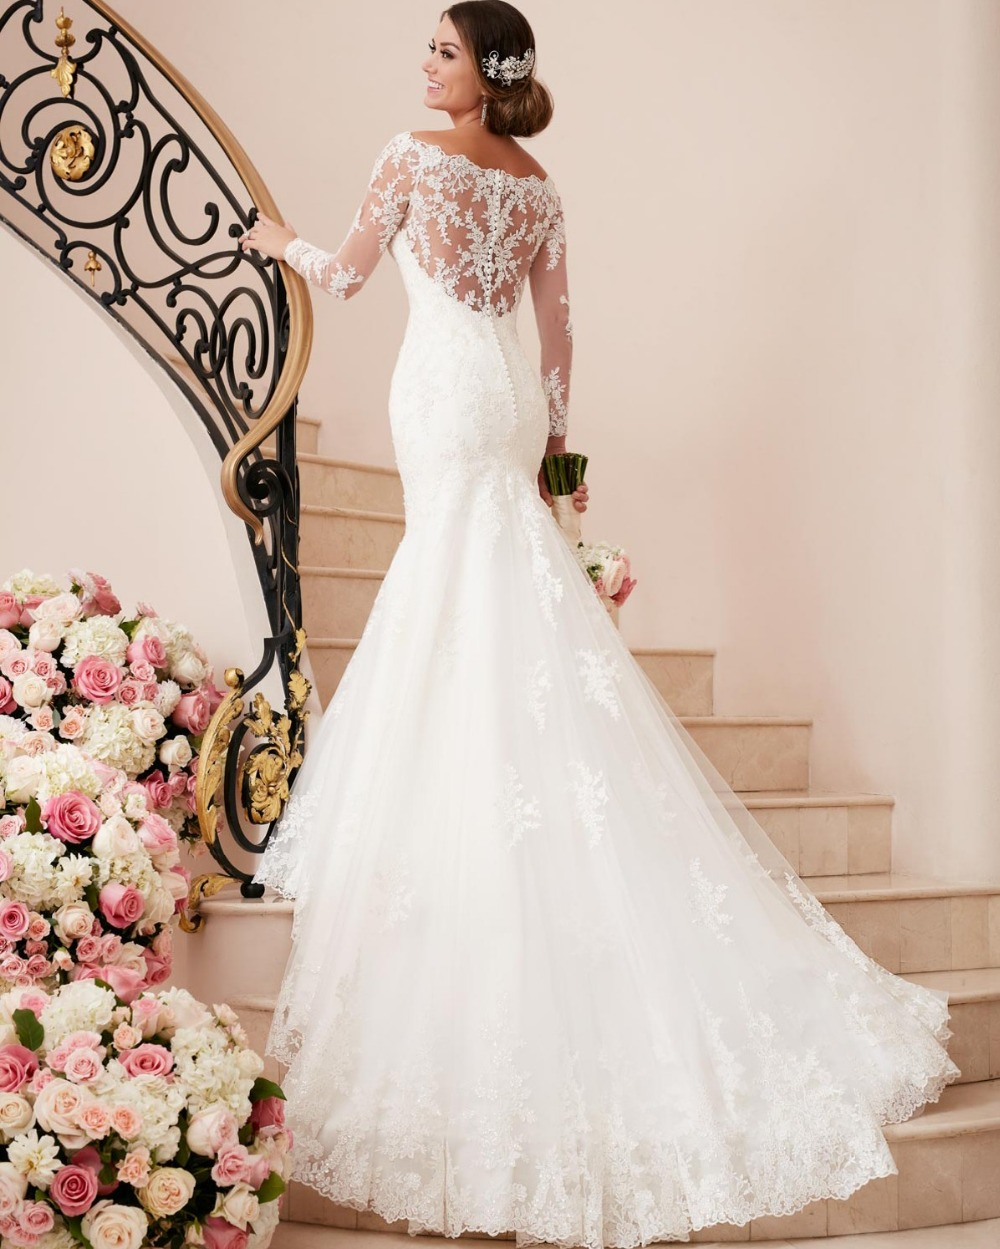 sexy mermaid wedding dresses Aliexpress com Buy PW New Vogue Fall Winter Tarik Ediz Sexy Mermaid Wedding Dress Lace Long Sleeves See Through Back Bridal Gown Custom from